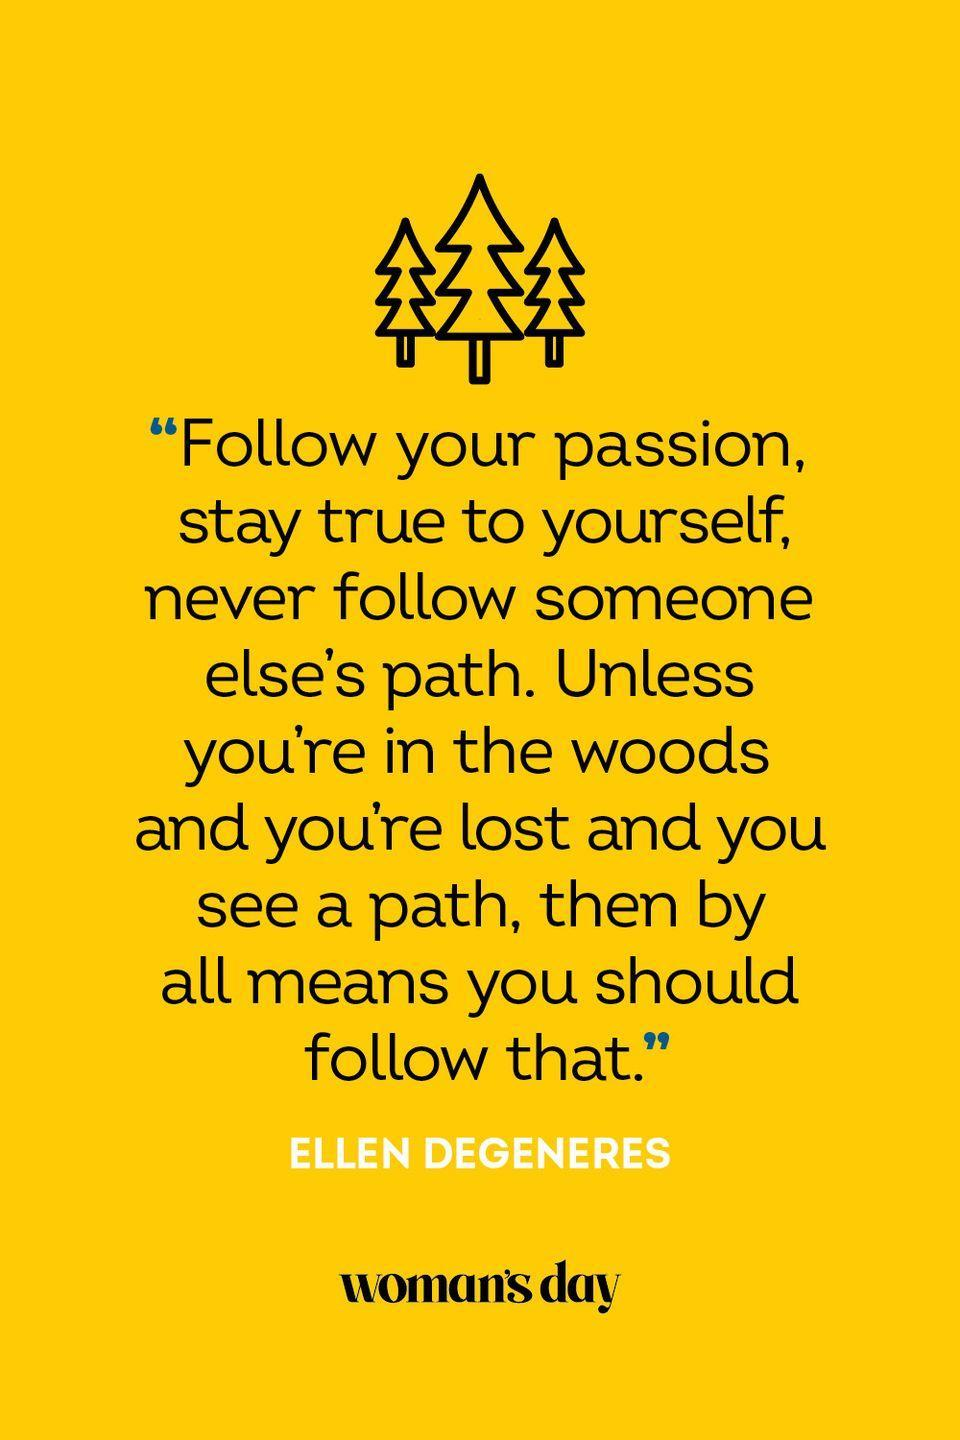 """<p>""""Follow your passion, stay true to yourself, never follow someone else's path. Unless you're in the woods and you're lost and you see a path, then by all means you should follow that.""""</p>"""